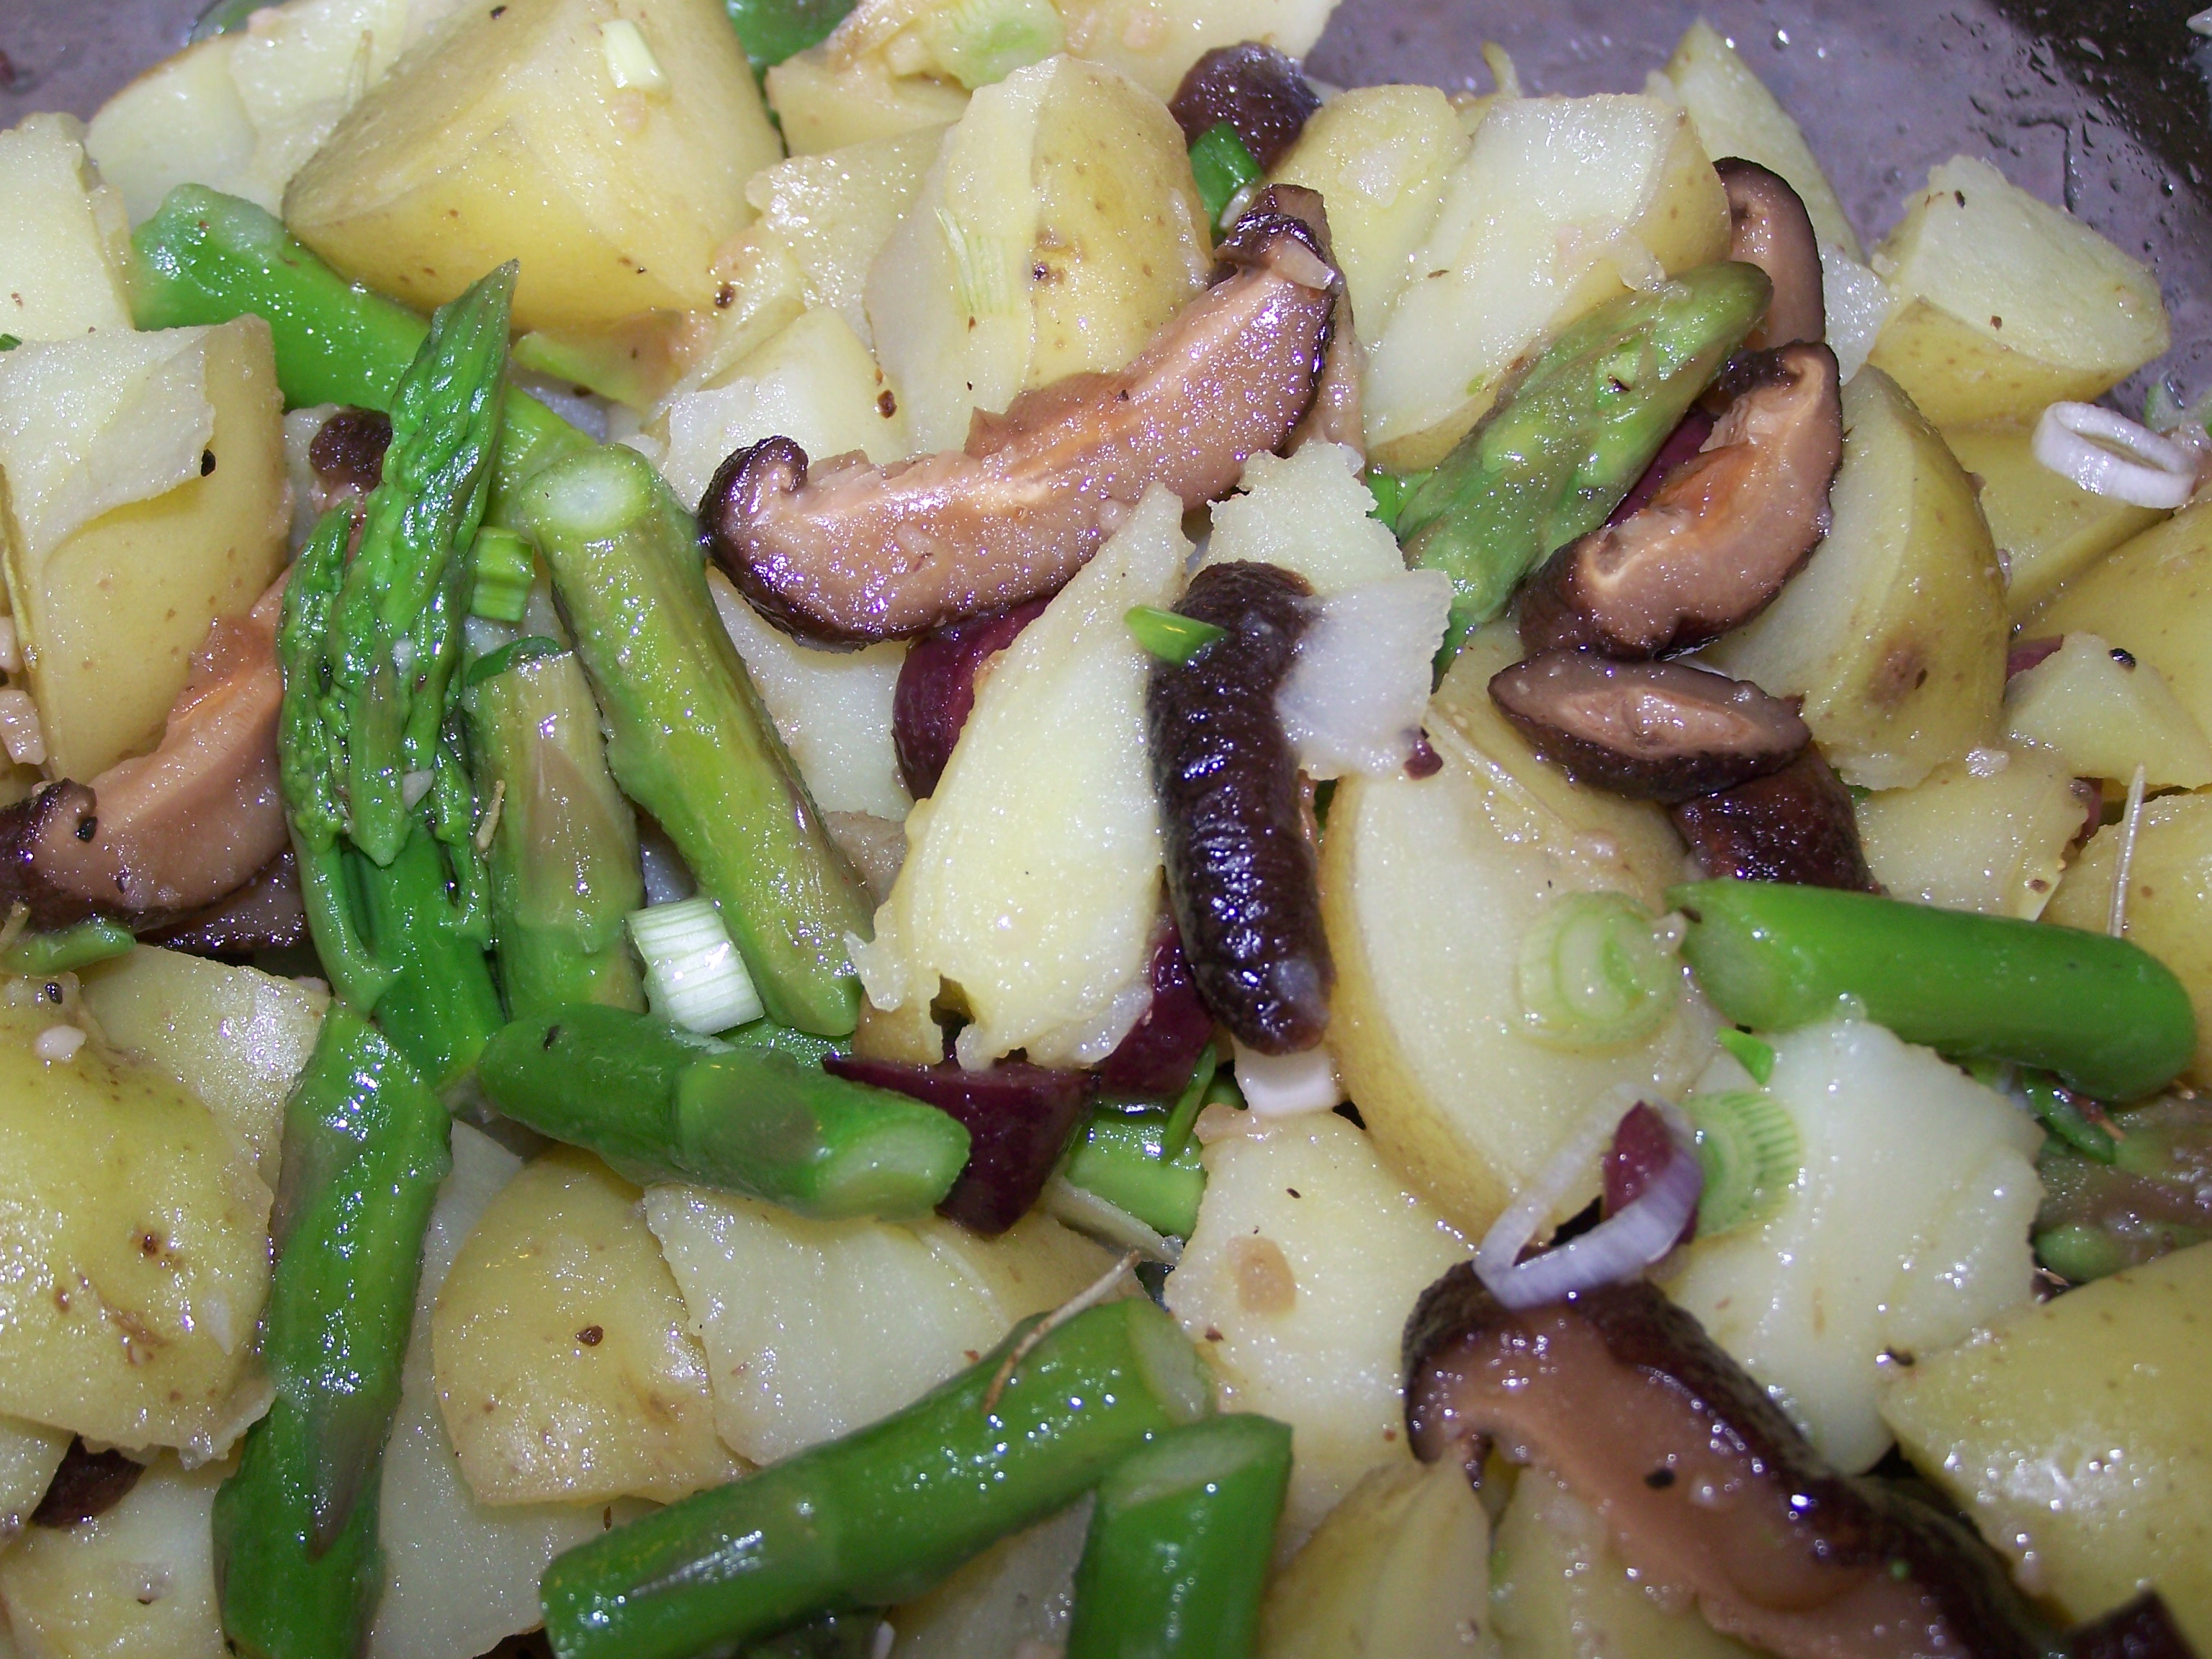 Potato Salad with Shiitake Mushrooms, Asparagus and Kalamata Olives